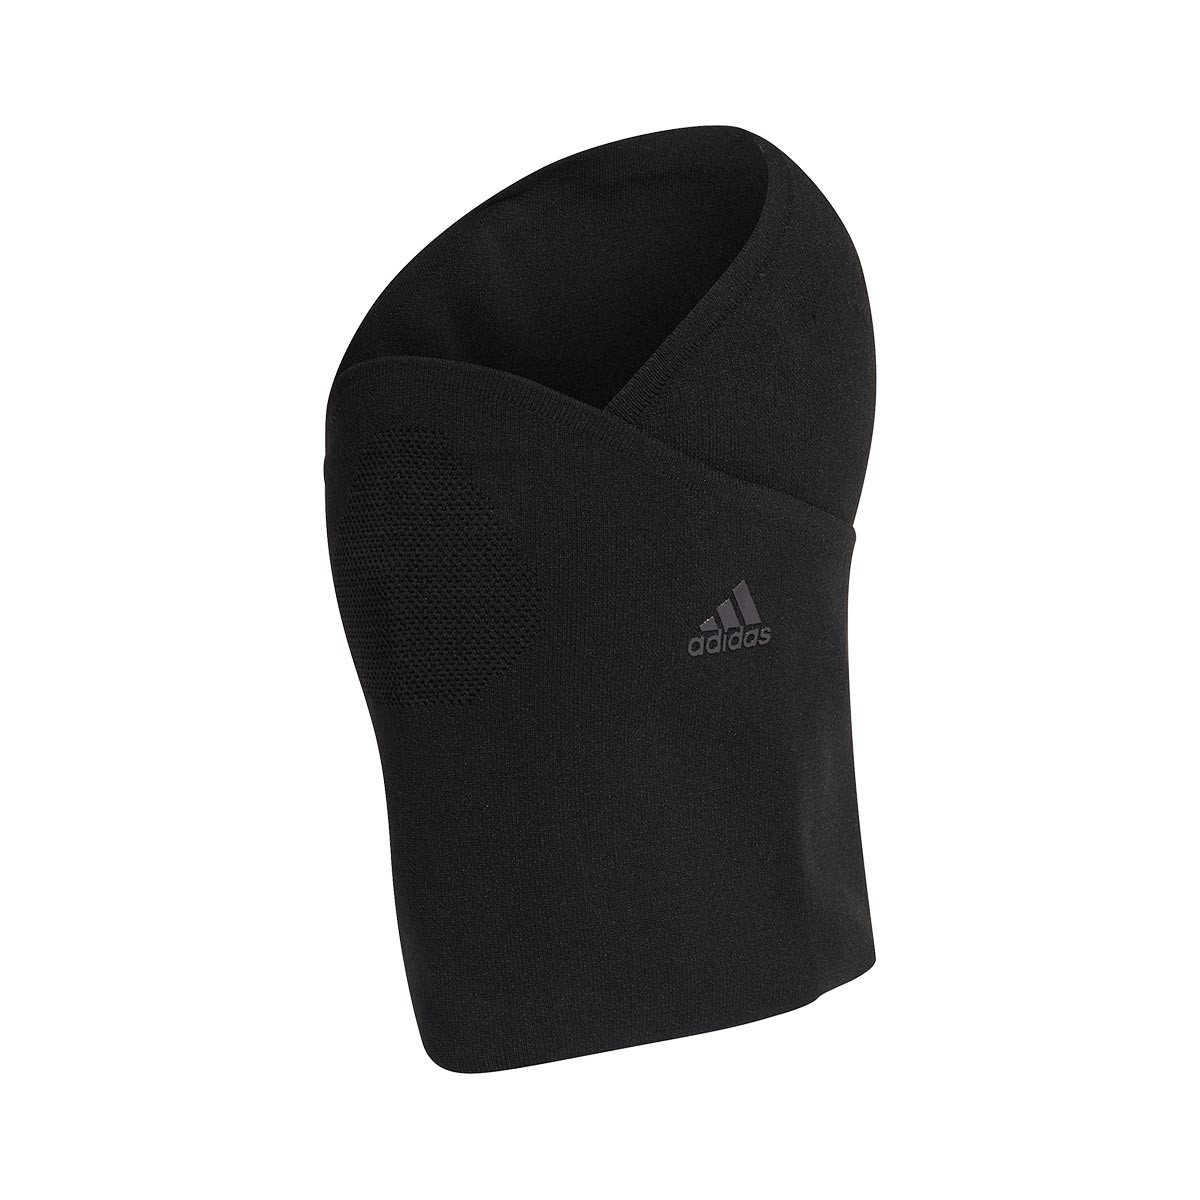 adidas football fleece neck warmer